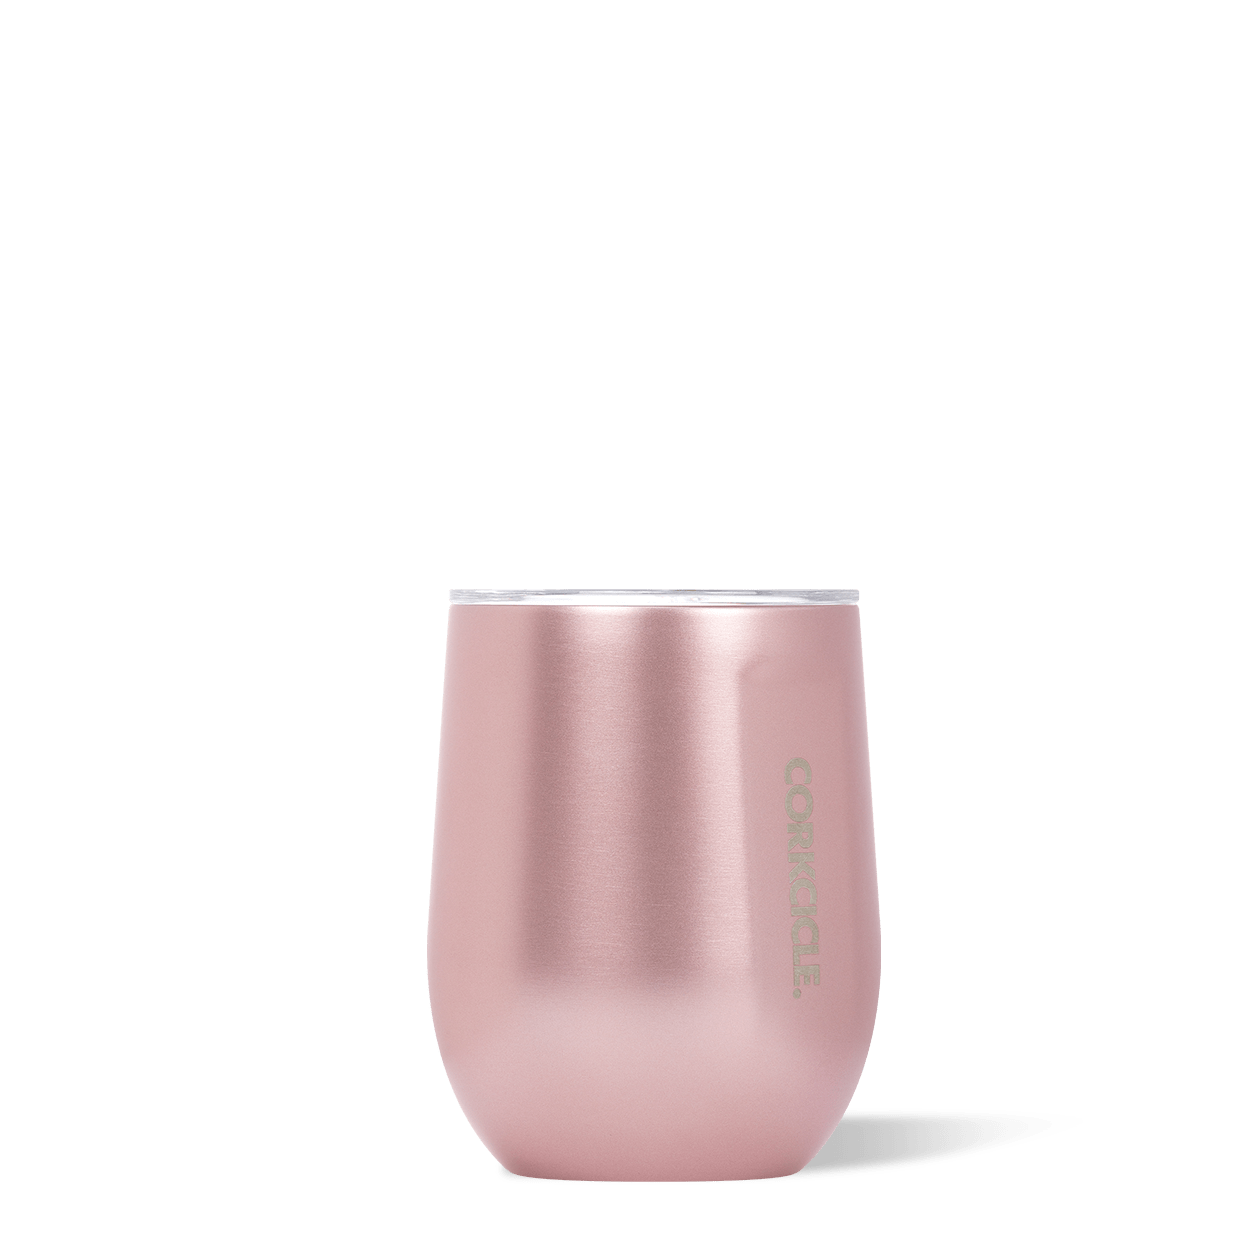 Corkcicle Rosé Metallic 12oz Stemless Wine Cup.